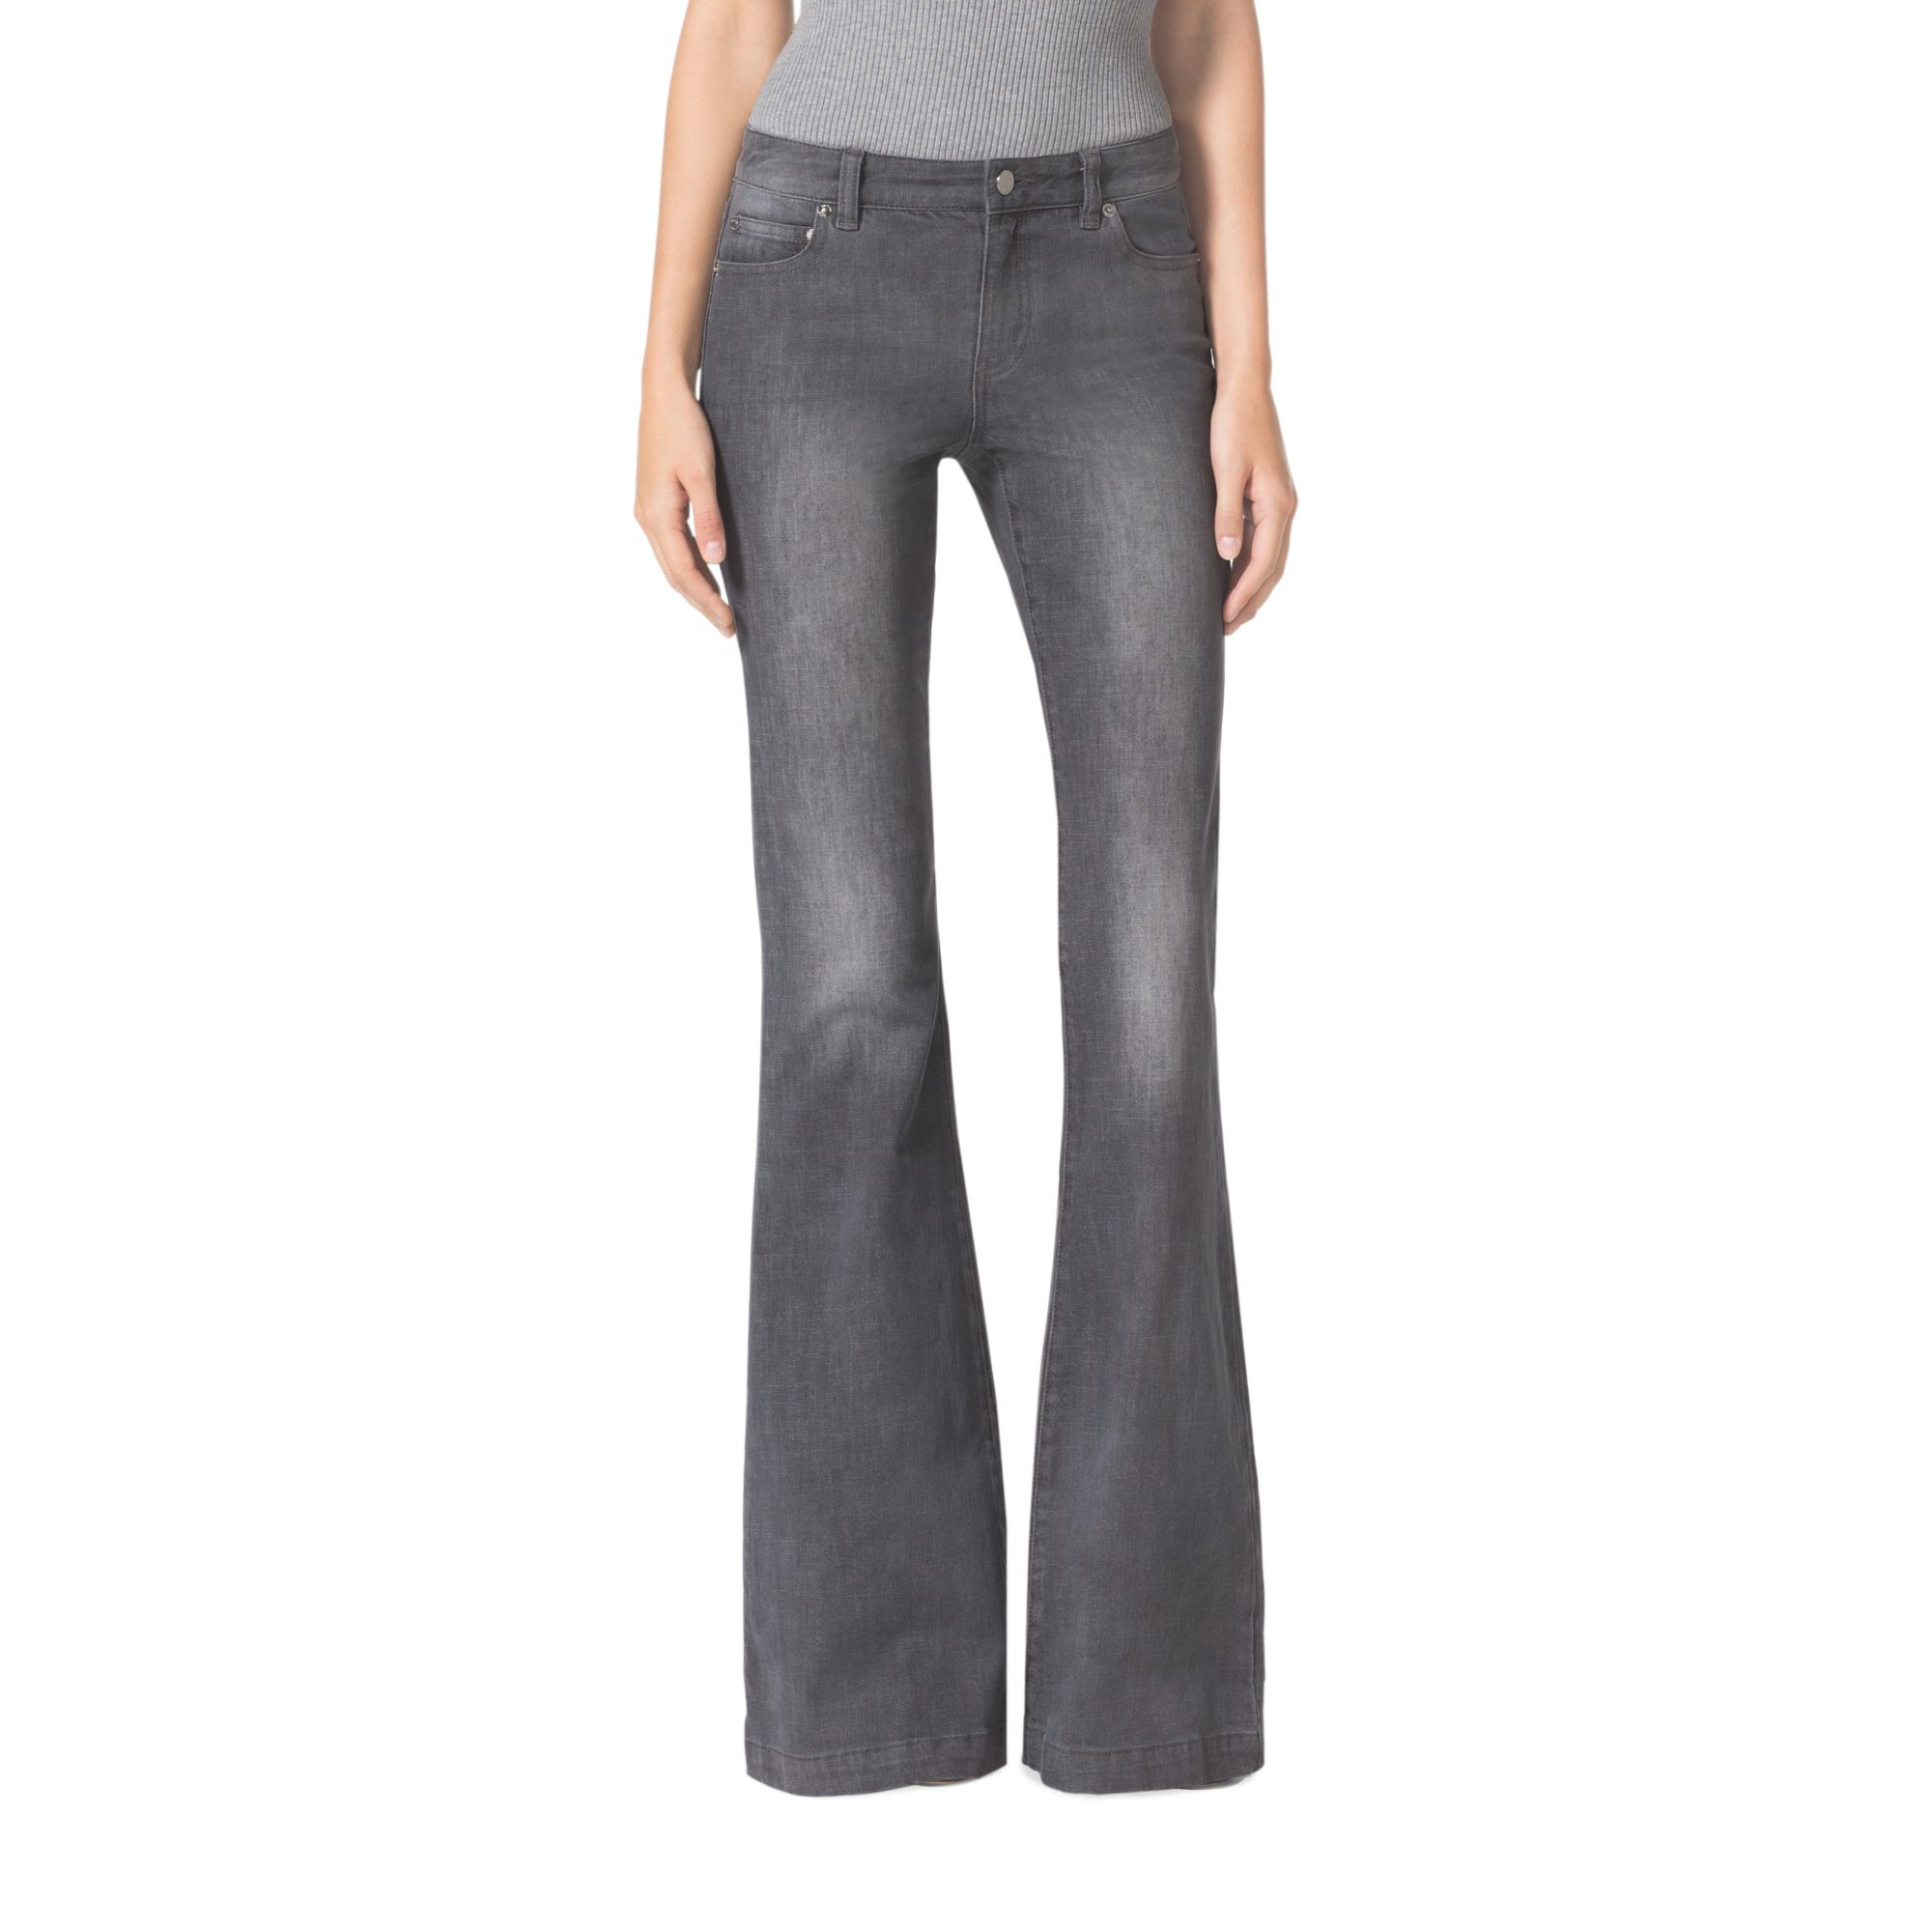 Michael kors Flared Jeans in Gray | Lyst